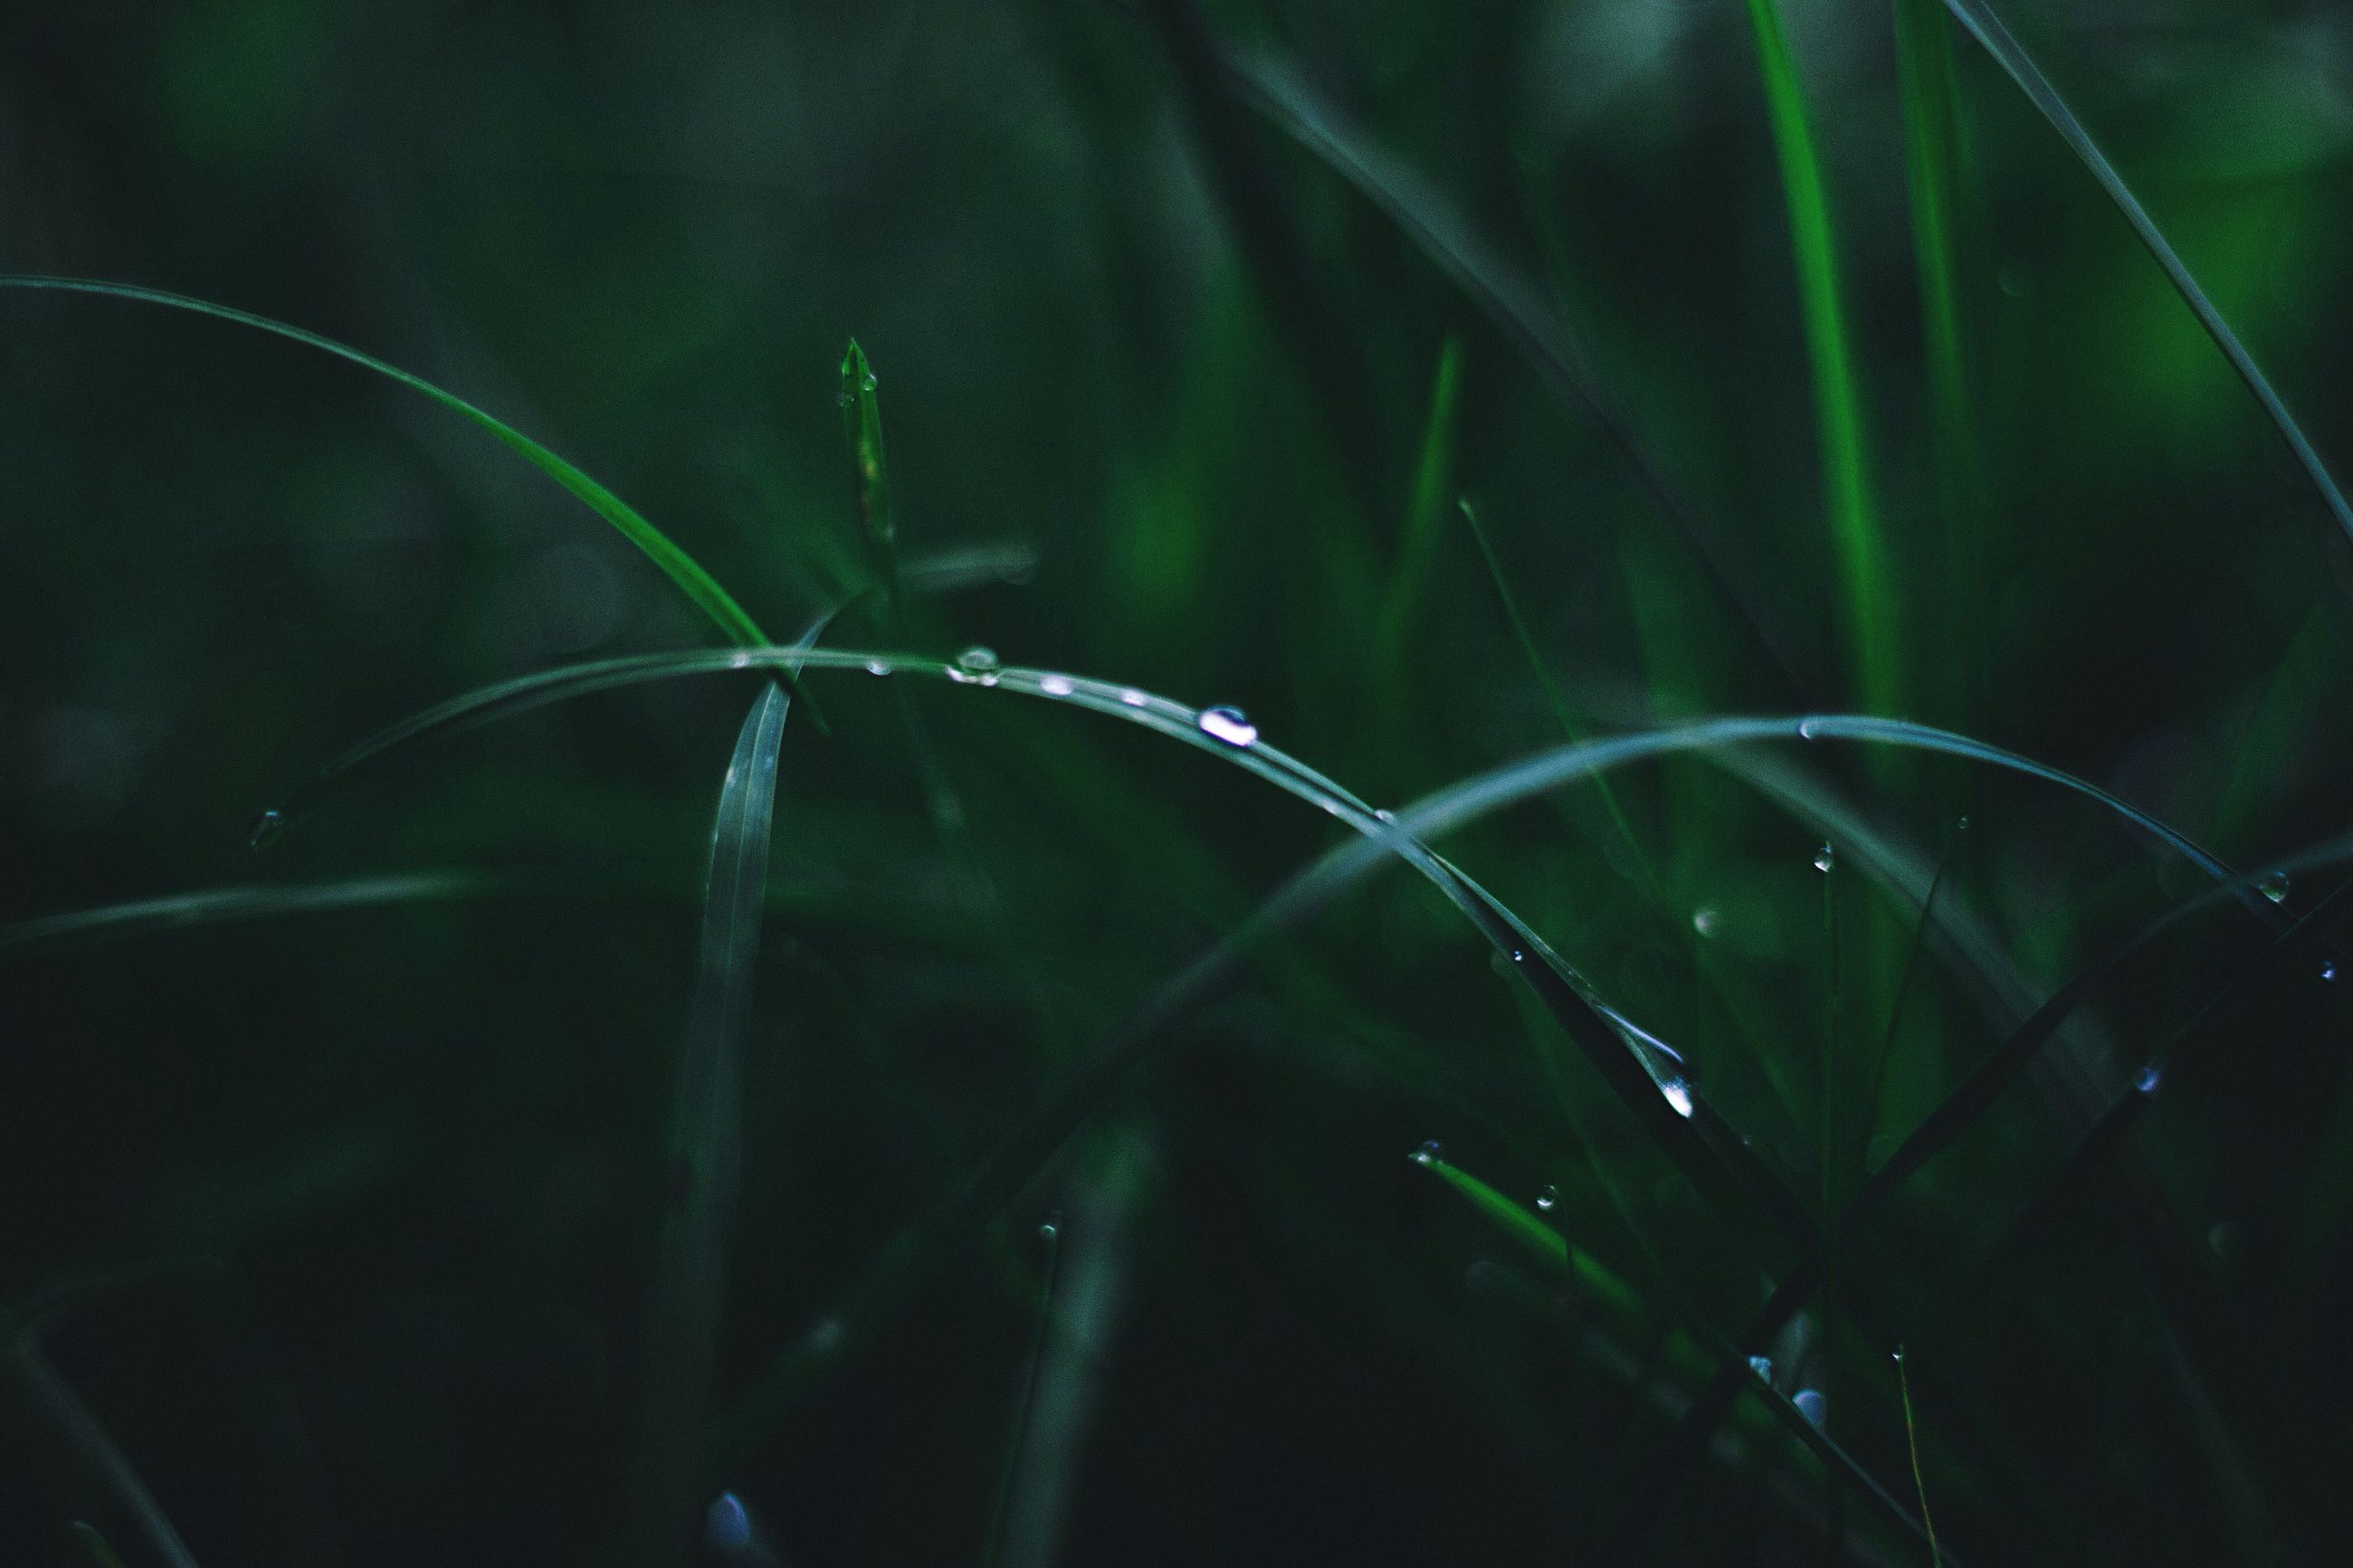 plant, growth, close-up, drop, water, nature, leaf, wet, focus on foreground, stem, beauty in nature, selective focus, dew, freshness, green color, fragility, botany, day, green, blade of grass, tranquility, outdoors, scenics, purity, remote